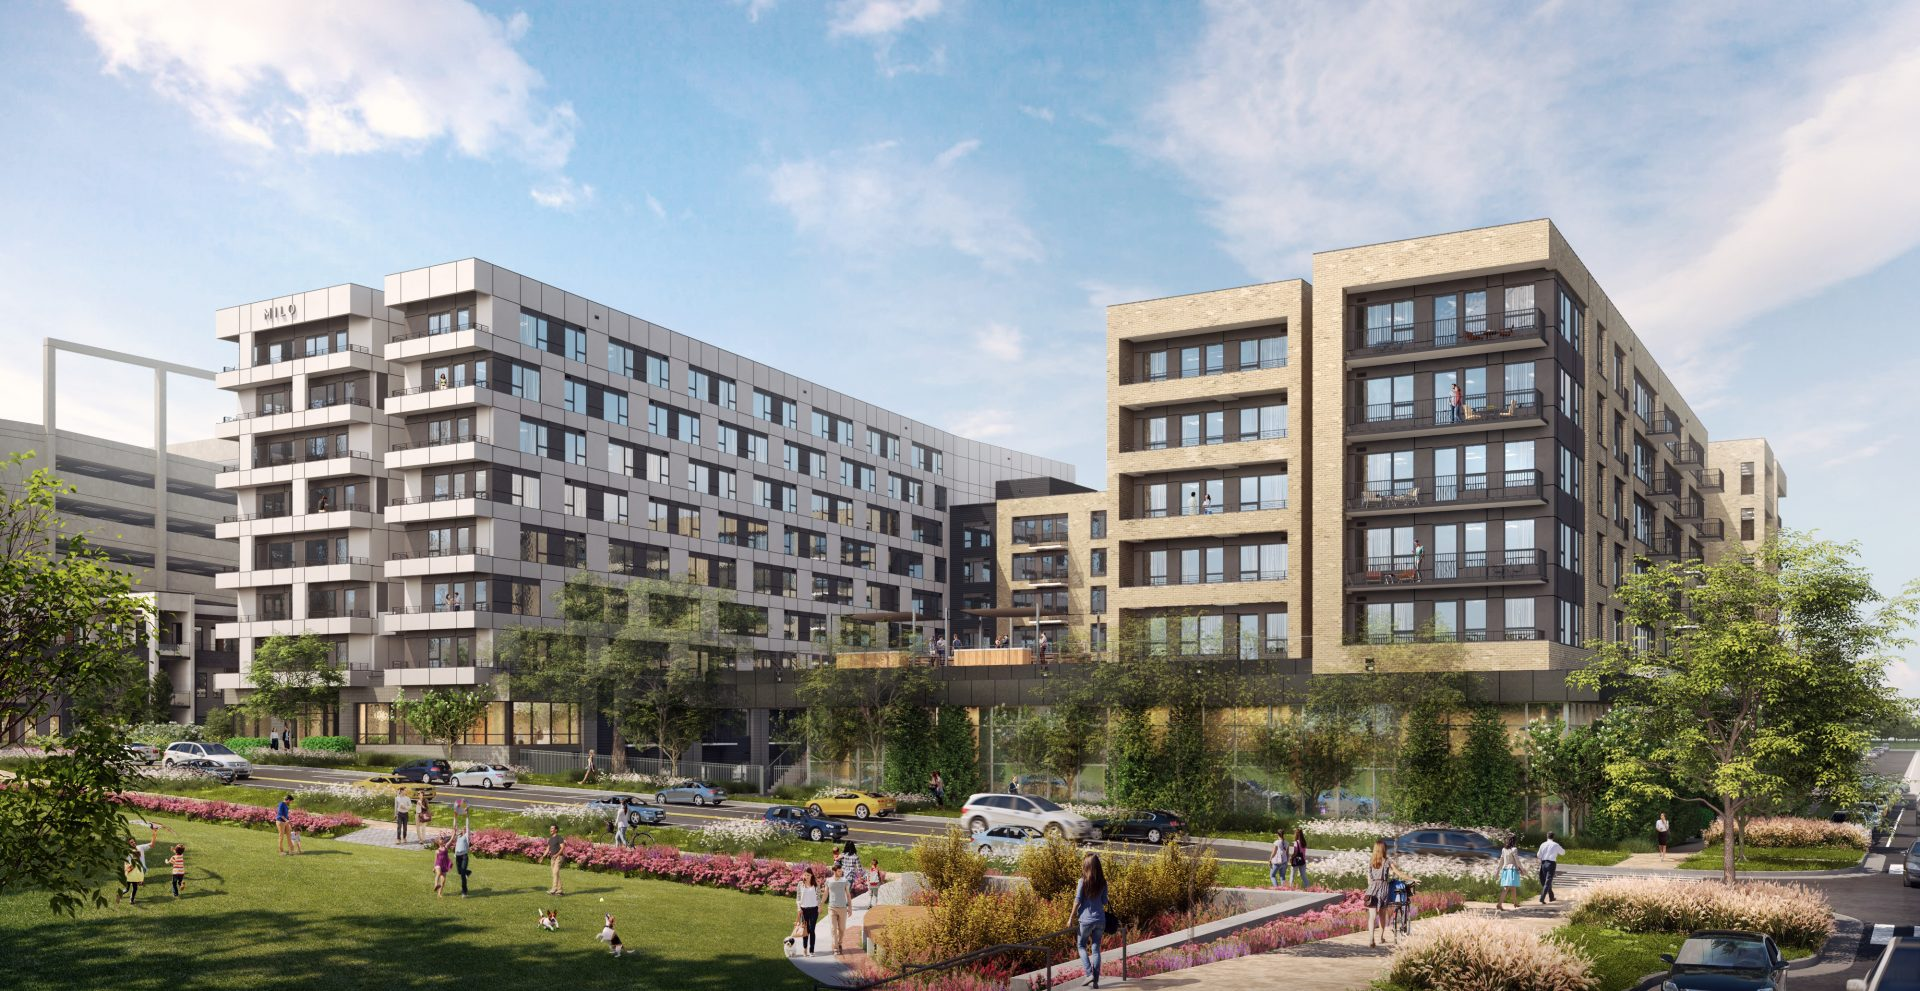 <p>Continuum was selected by the University of Colorado and the City of Denver to redevelop the 26 acre former teaching hospital site in January of 2014.</p>